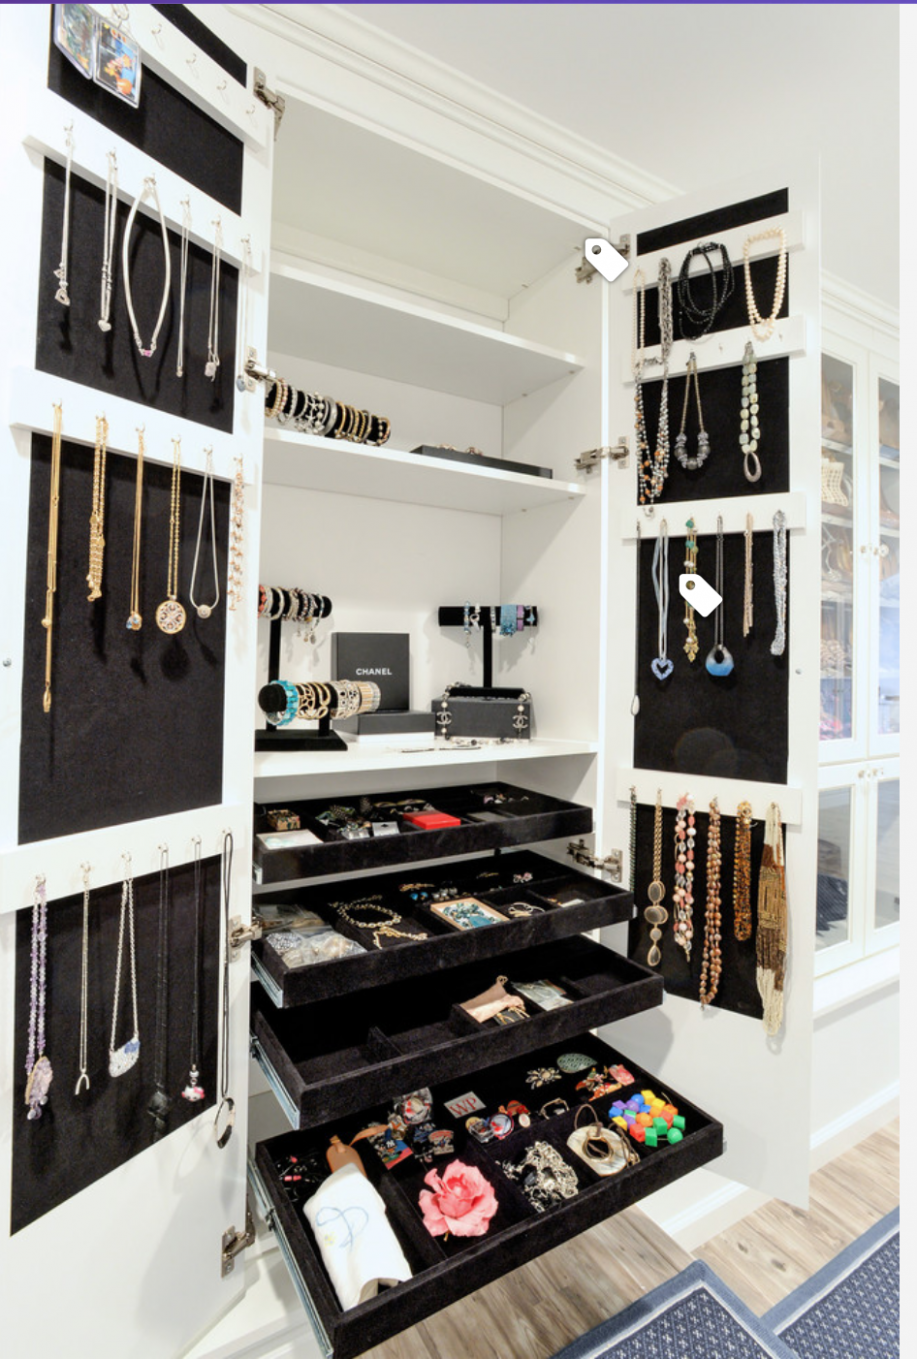 Jewelry cabinet in walk-in closet (With images) | Closet designs ..